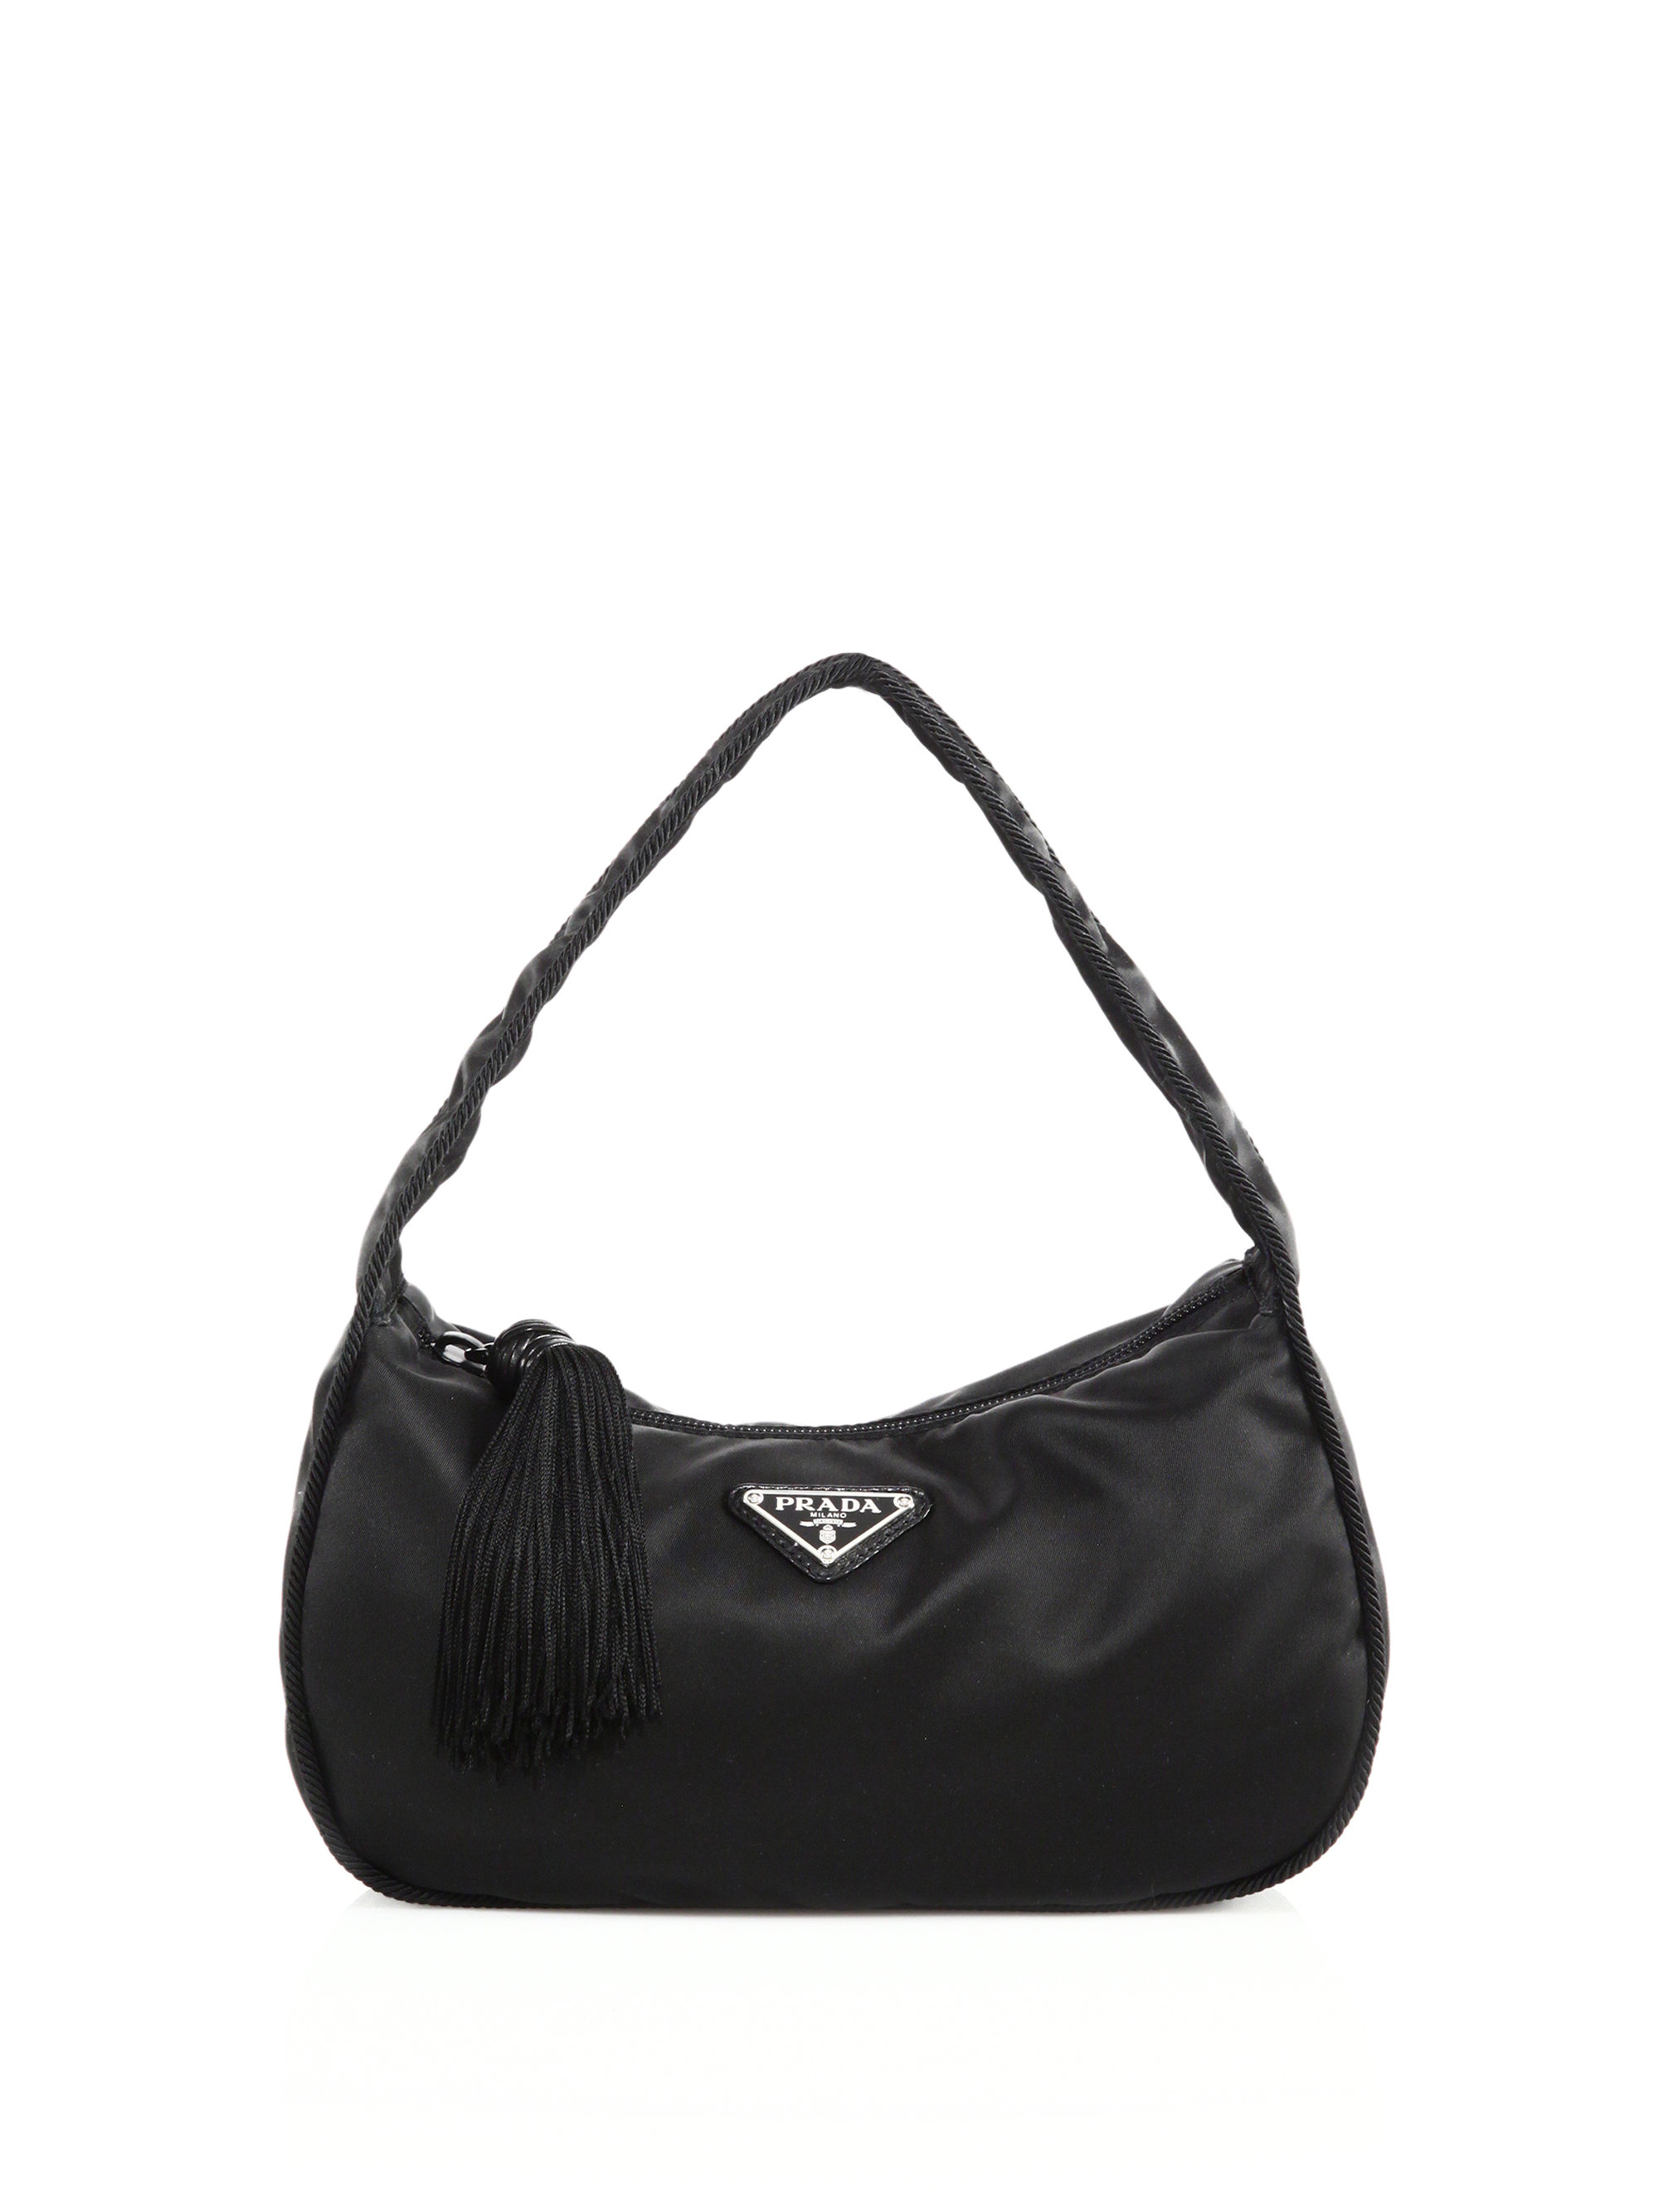 98c9da9daca6 Prada Nylon Crescent Shoulder Bag in Black - Lyst